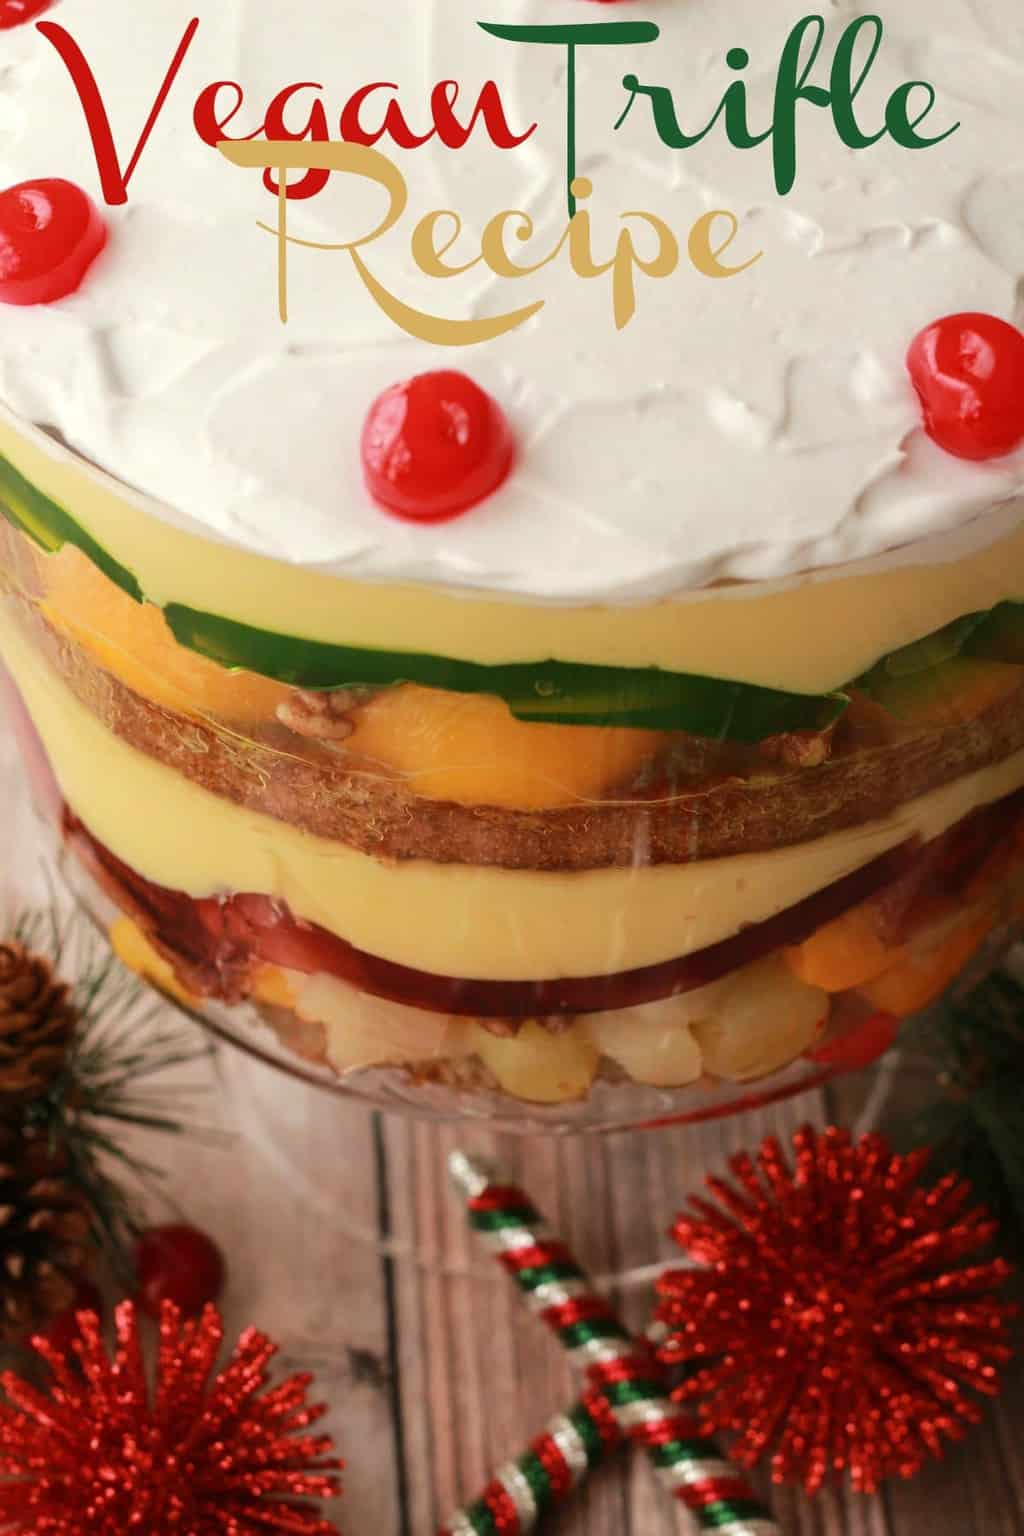 Festive and colorful vegan trifle recipe. Multi-layered trifle filled with fruits, nuts, custard, vegan jello and vanilla sponge cake soaked in sherry! #vegan #lovingitvegan #trifle #holidays #christmas #dessert